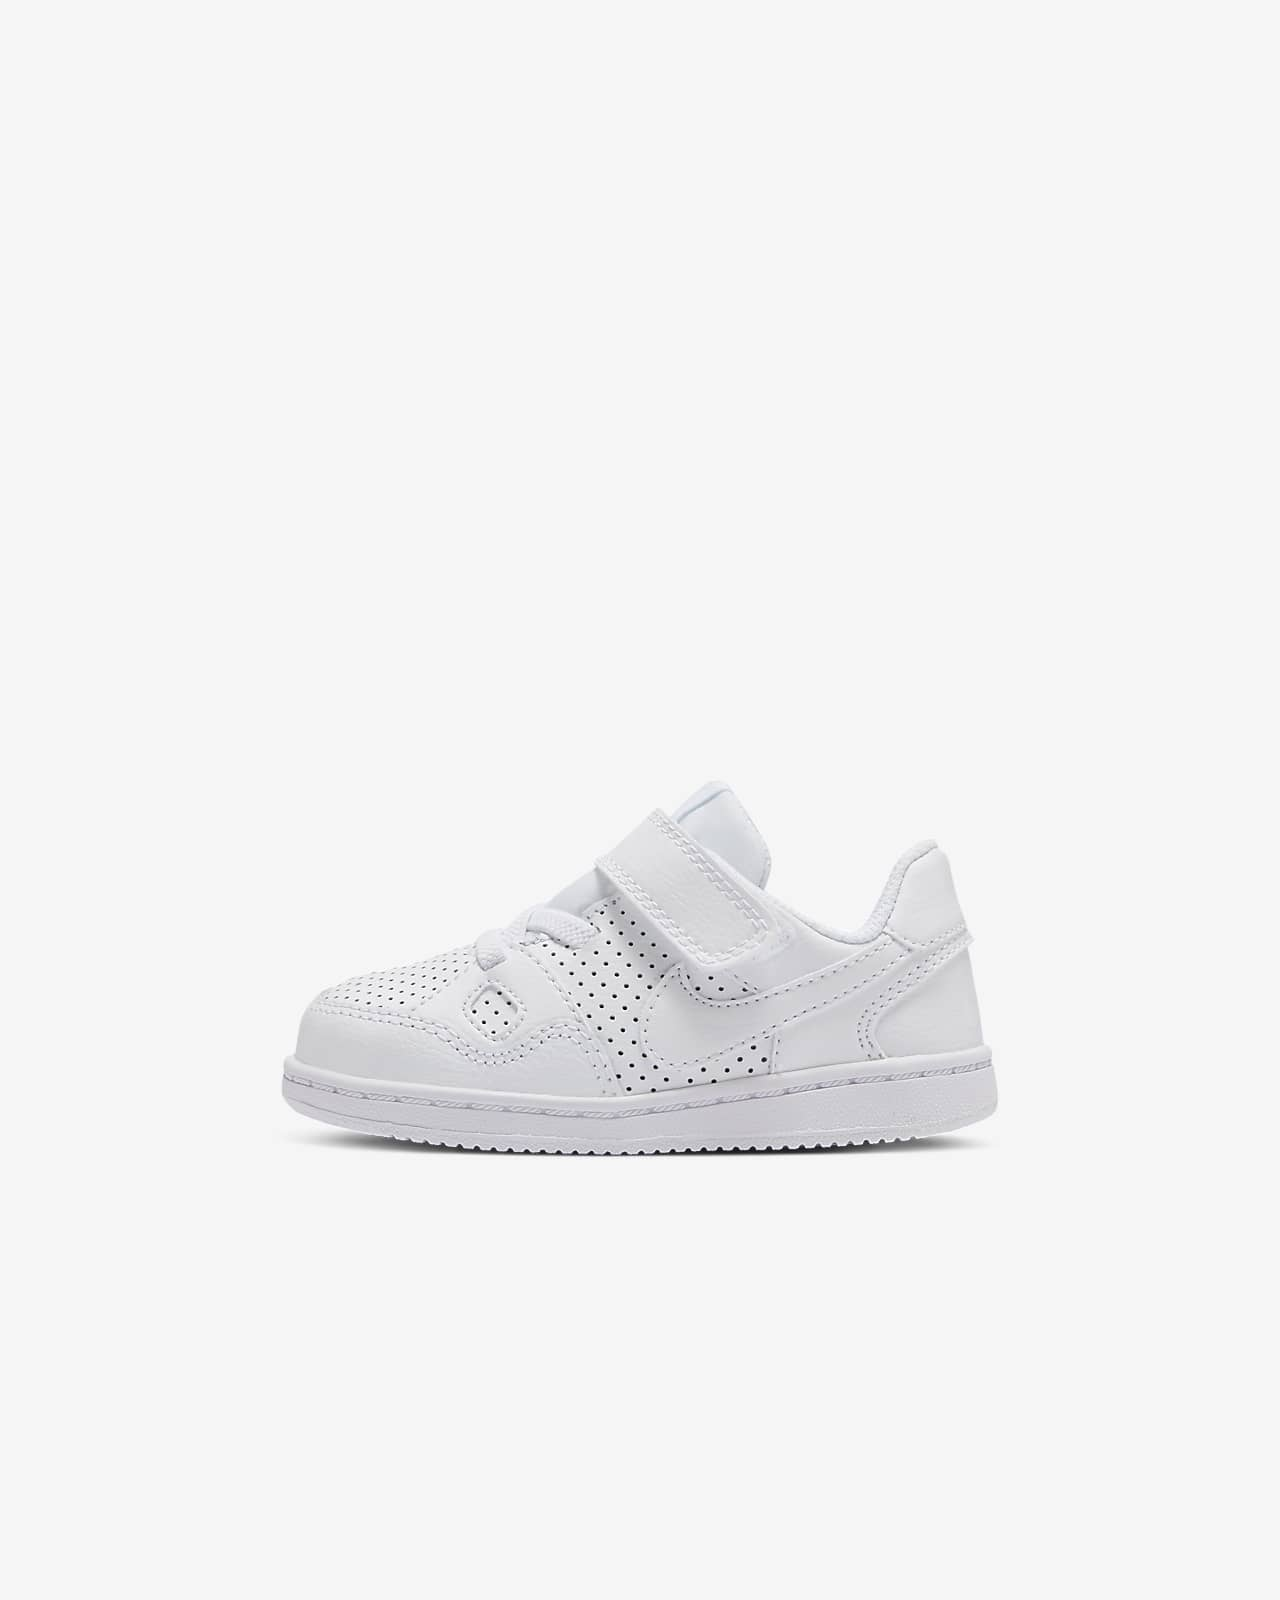 Nike Son of Force Toddler Shoe